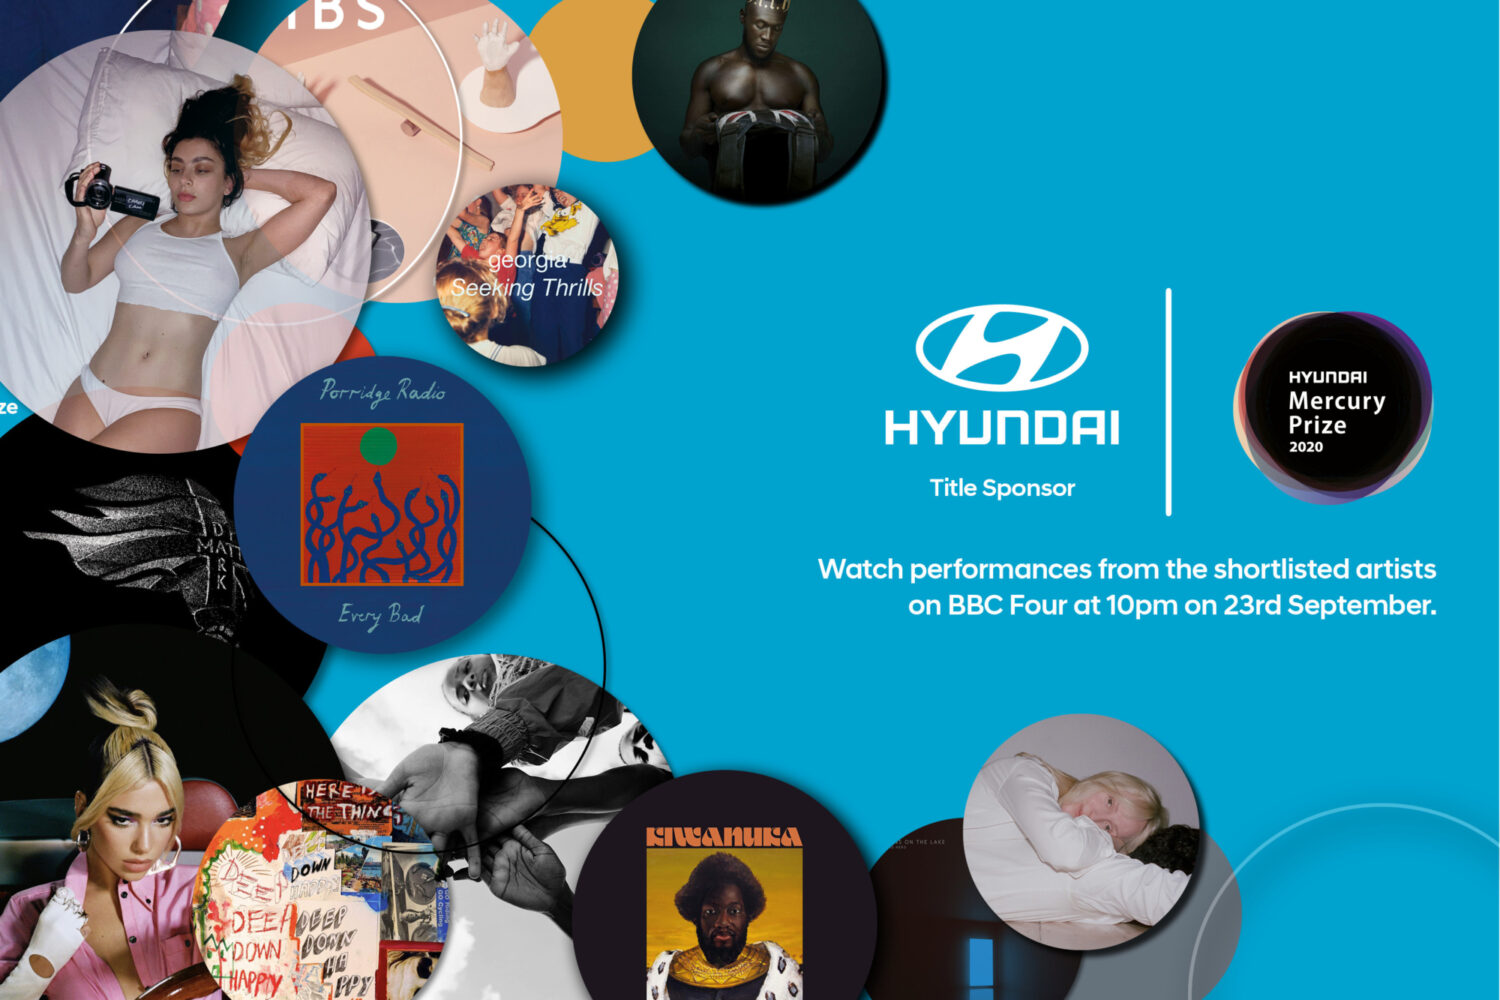 What to expect from the 2020 Hyundai Mercury Prize